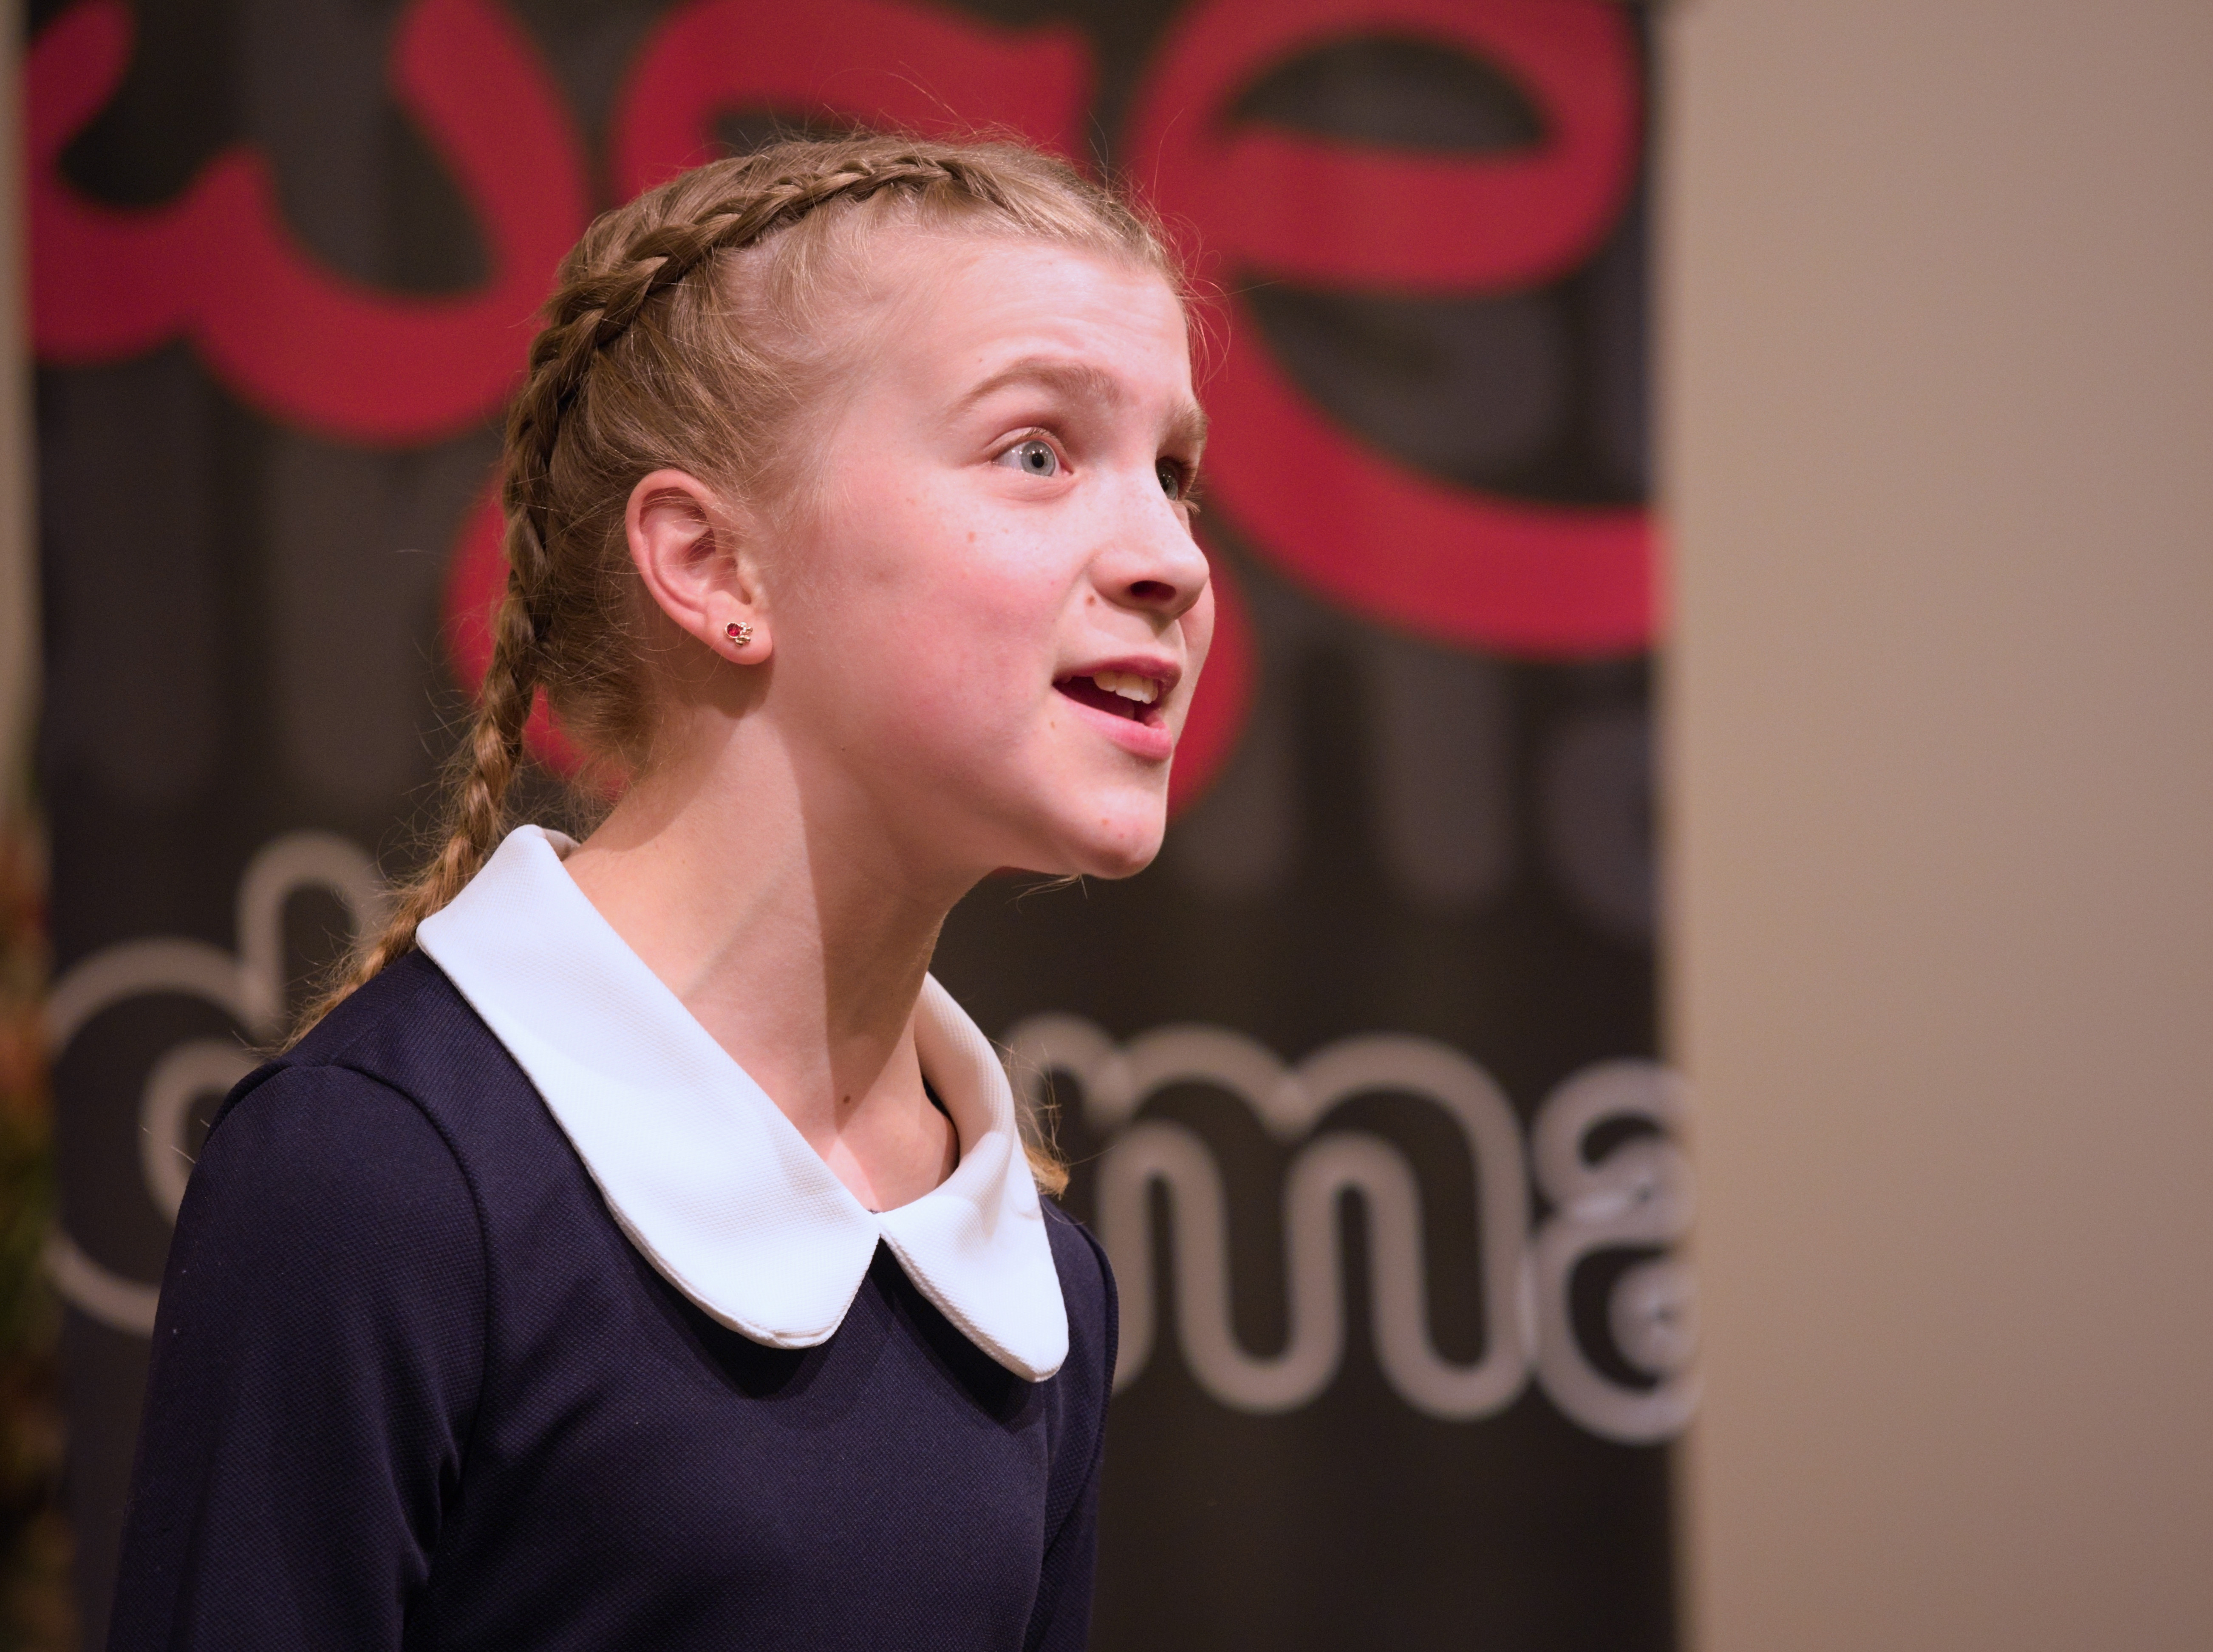 WGE Classical Vocal Meaghan Wilksch Performs